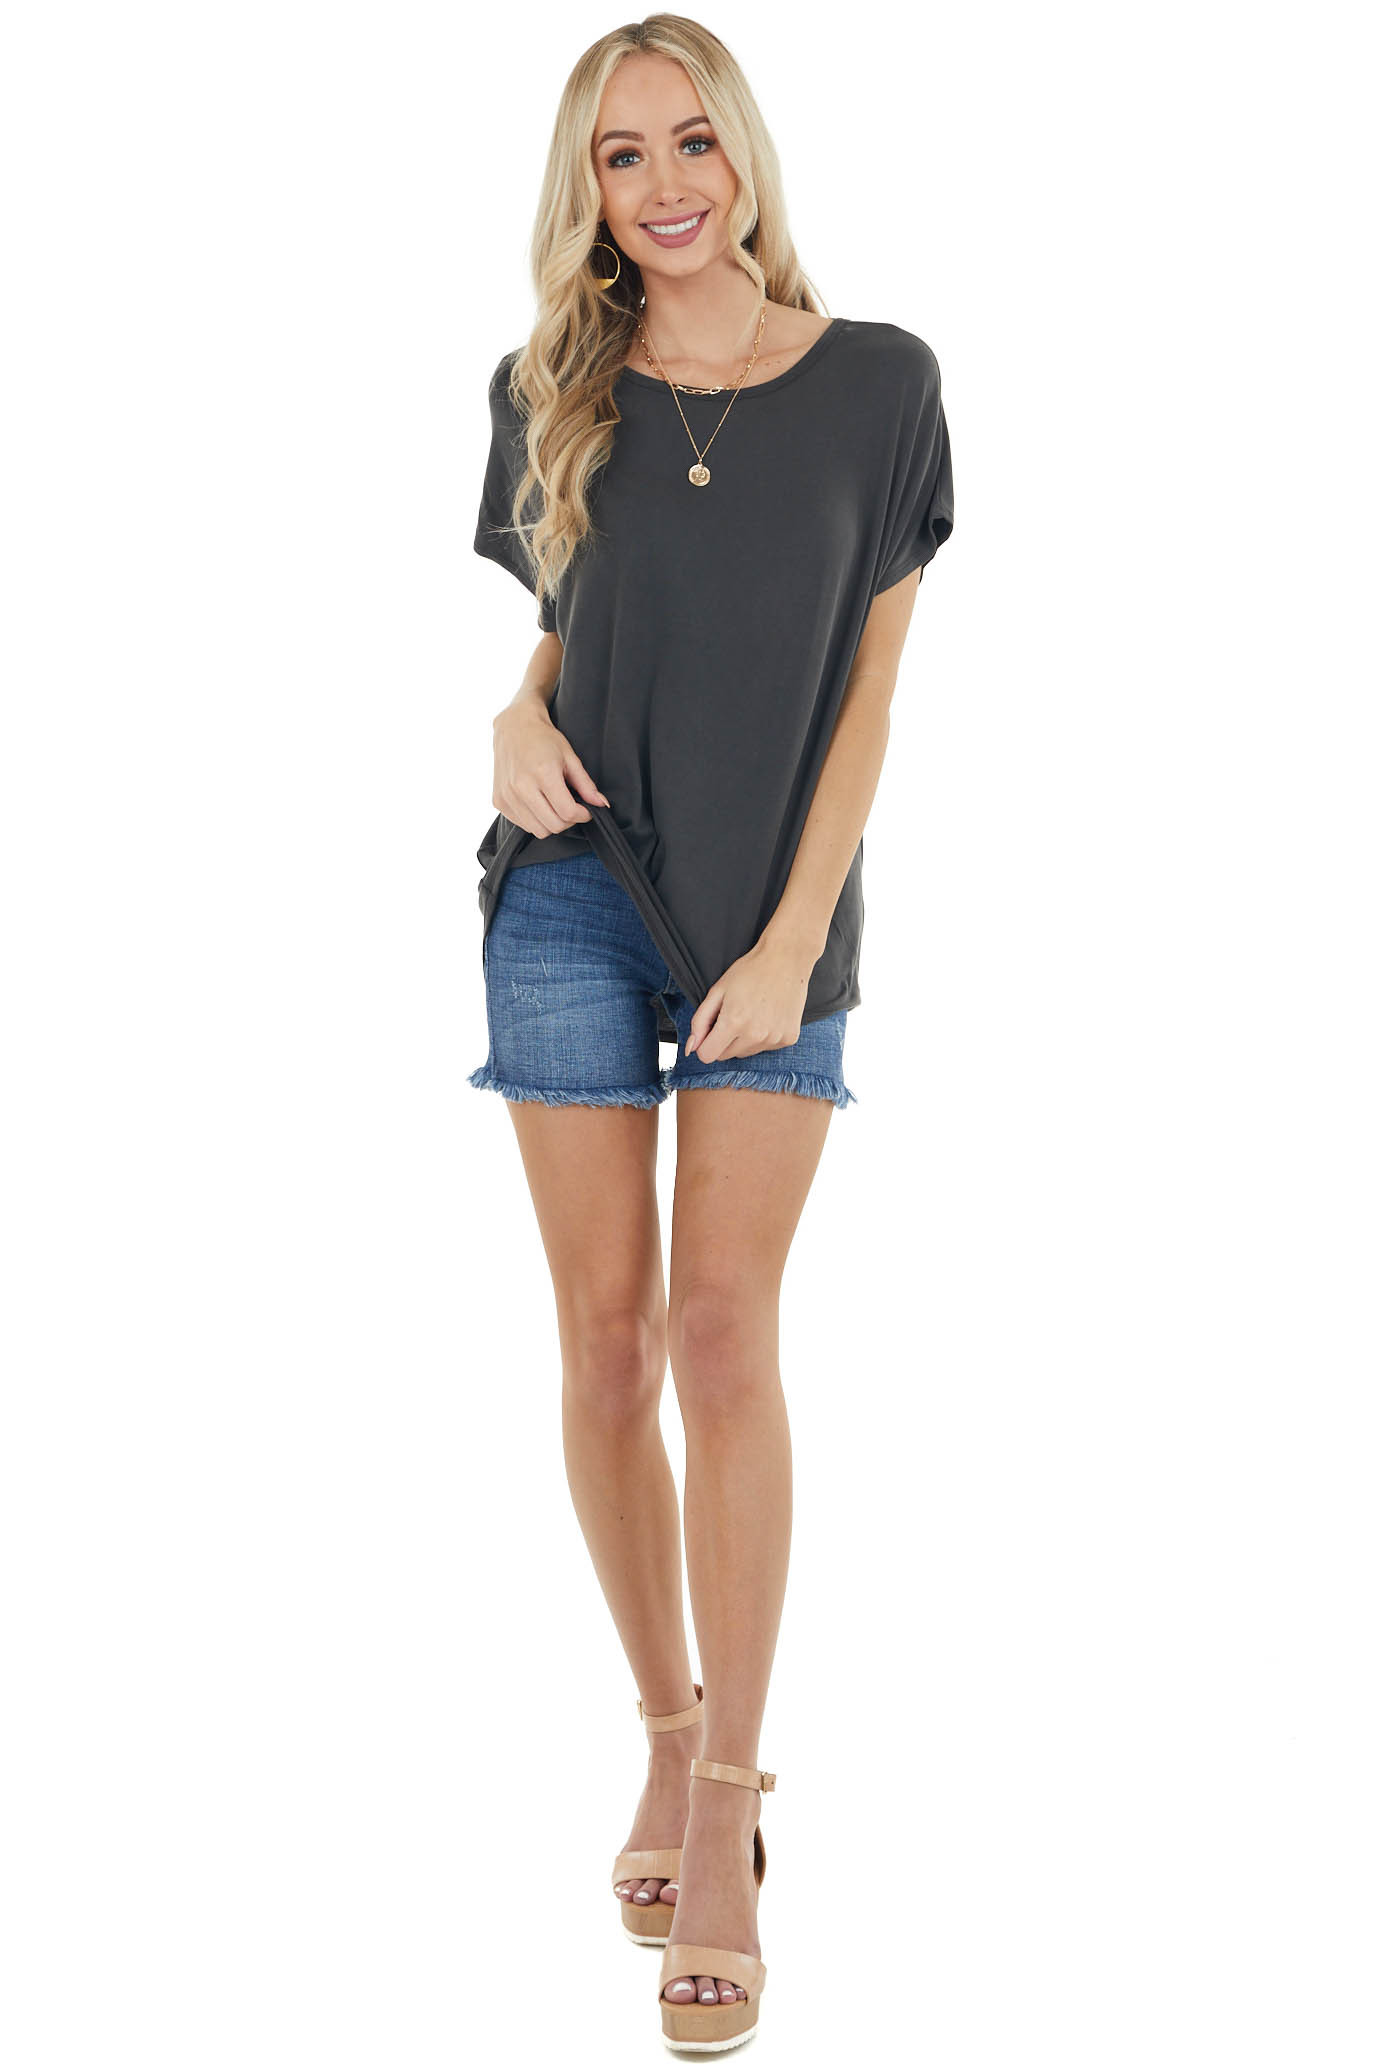 Vintage Black Short Sleeve Oversized Top with Cut Out Detail